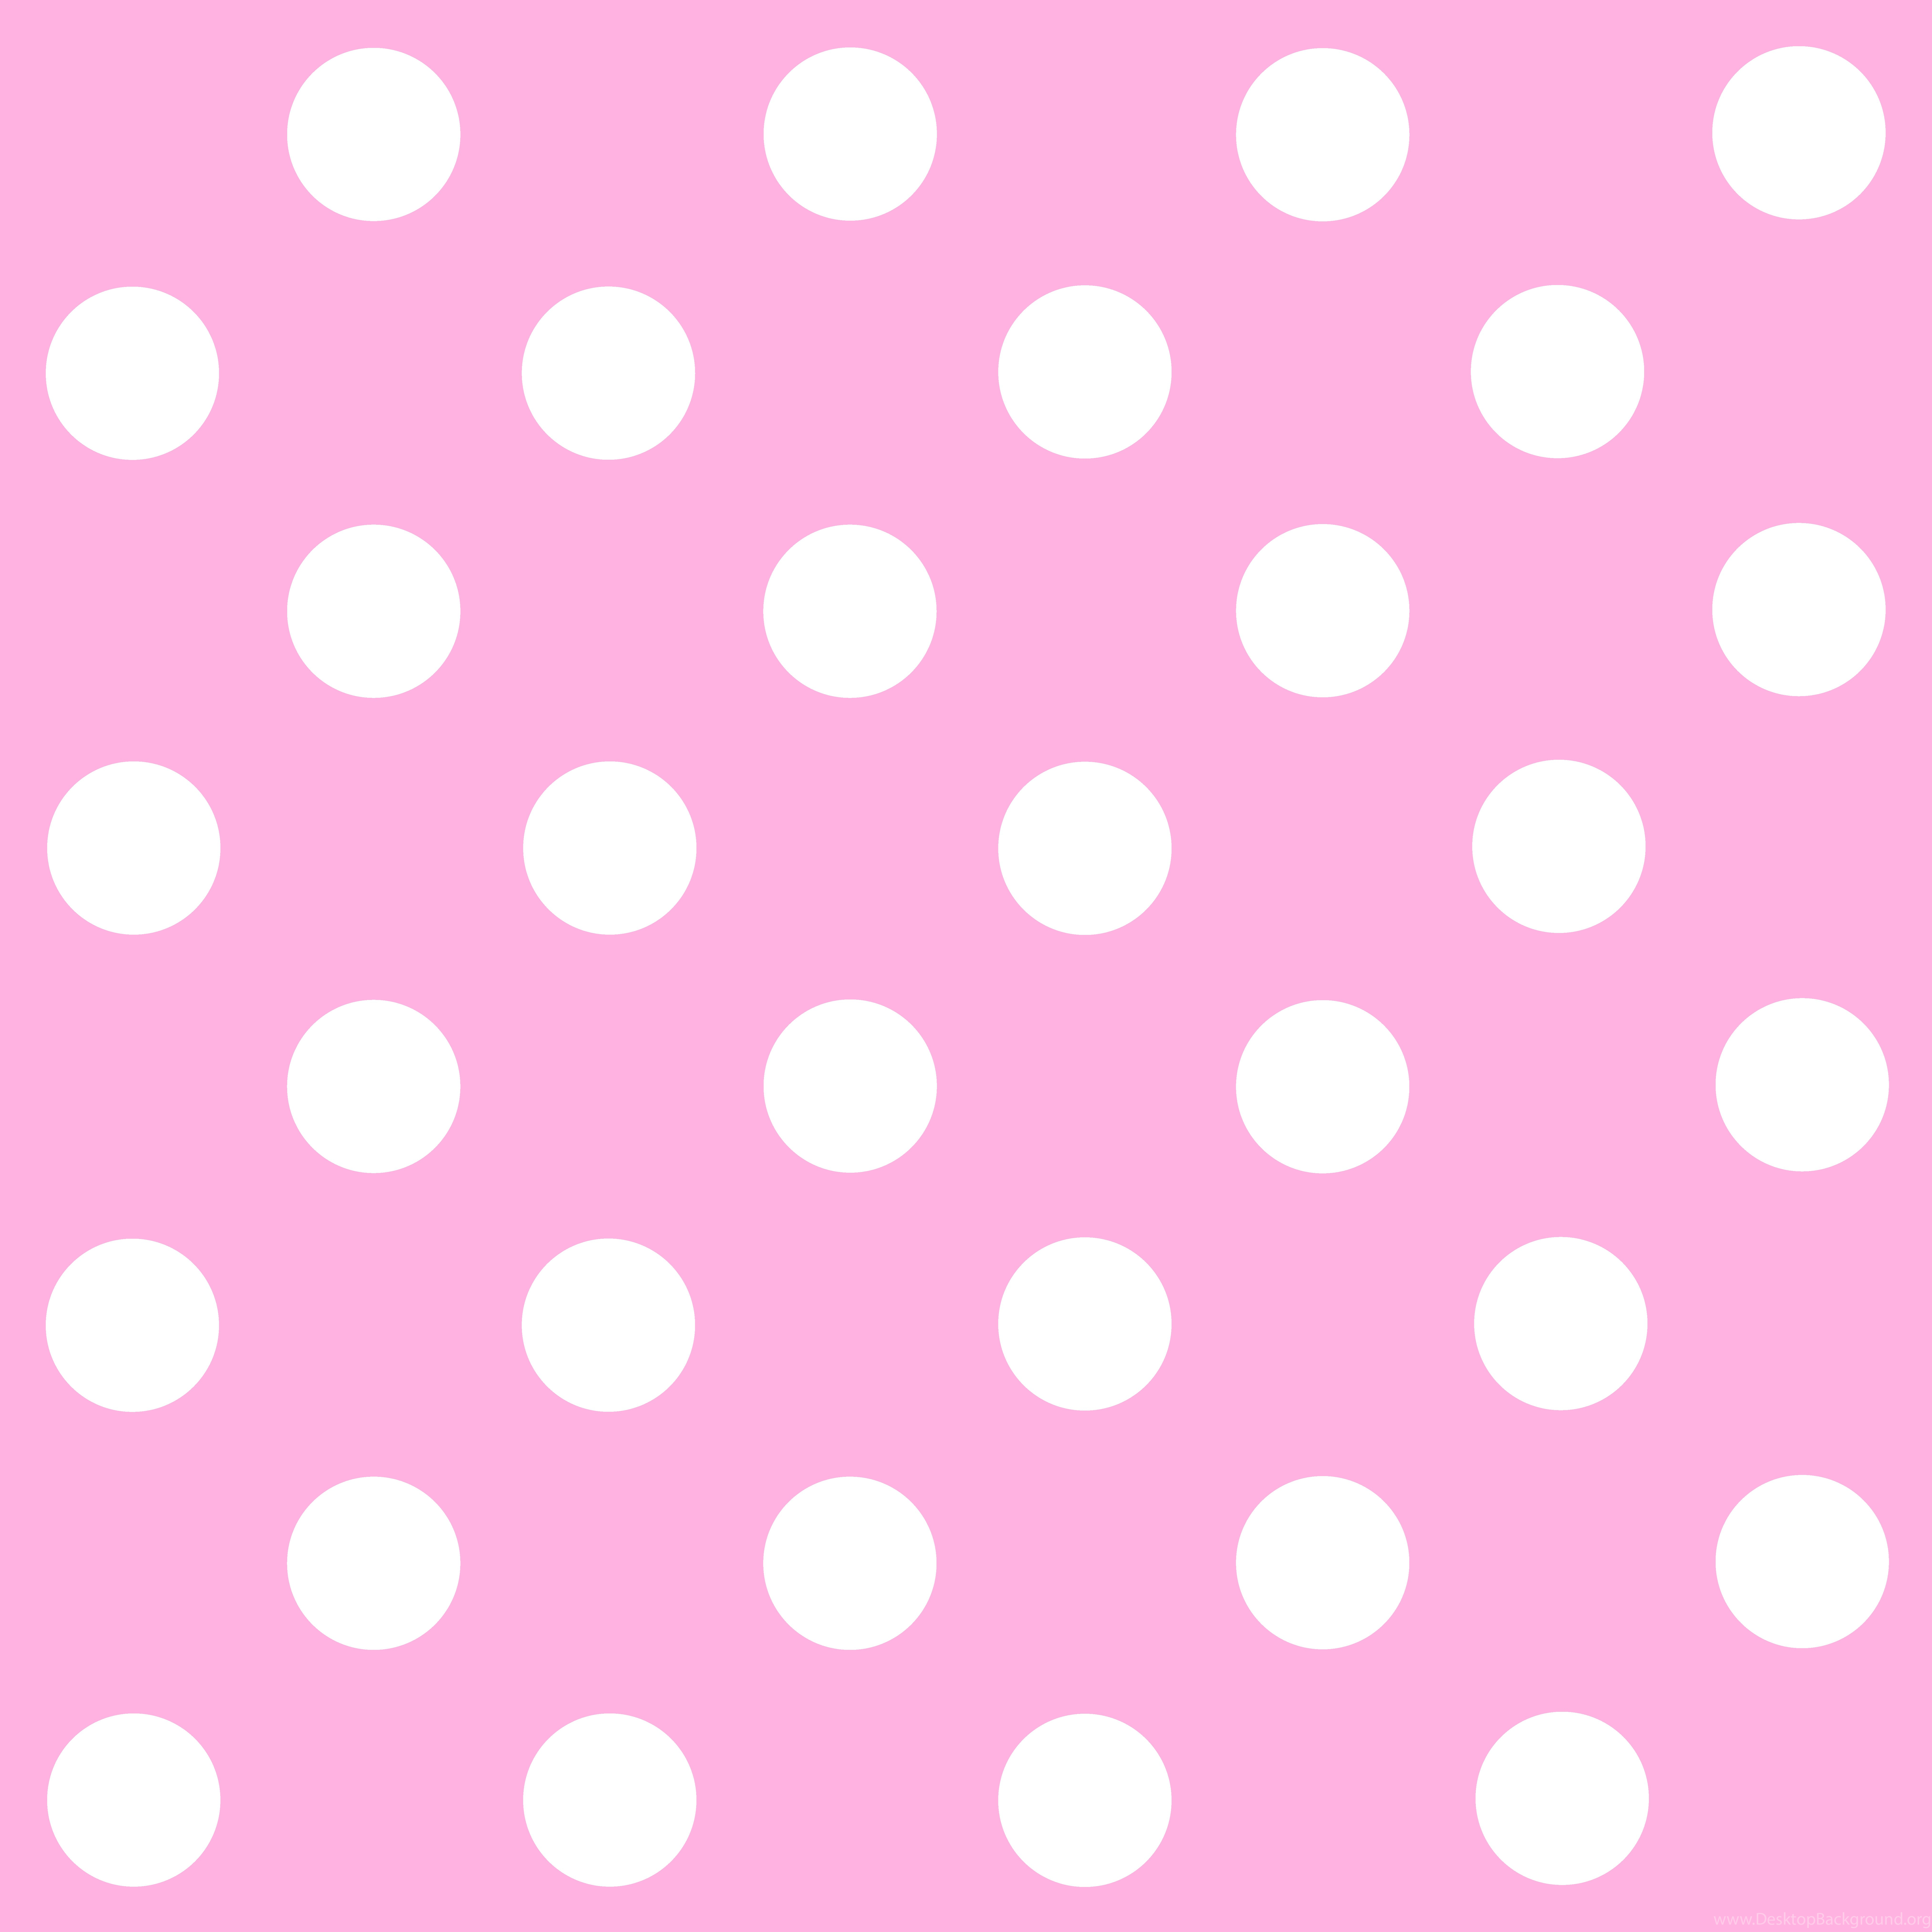 Pink Polka Dot Wallpaper: Polka Dot Phone Wallpapers